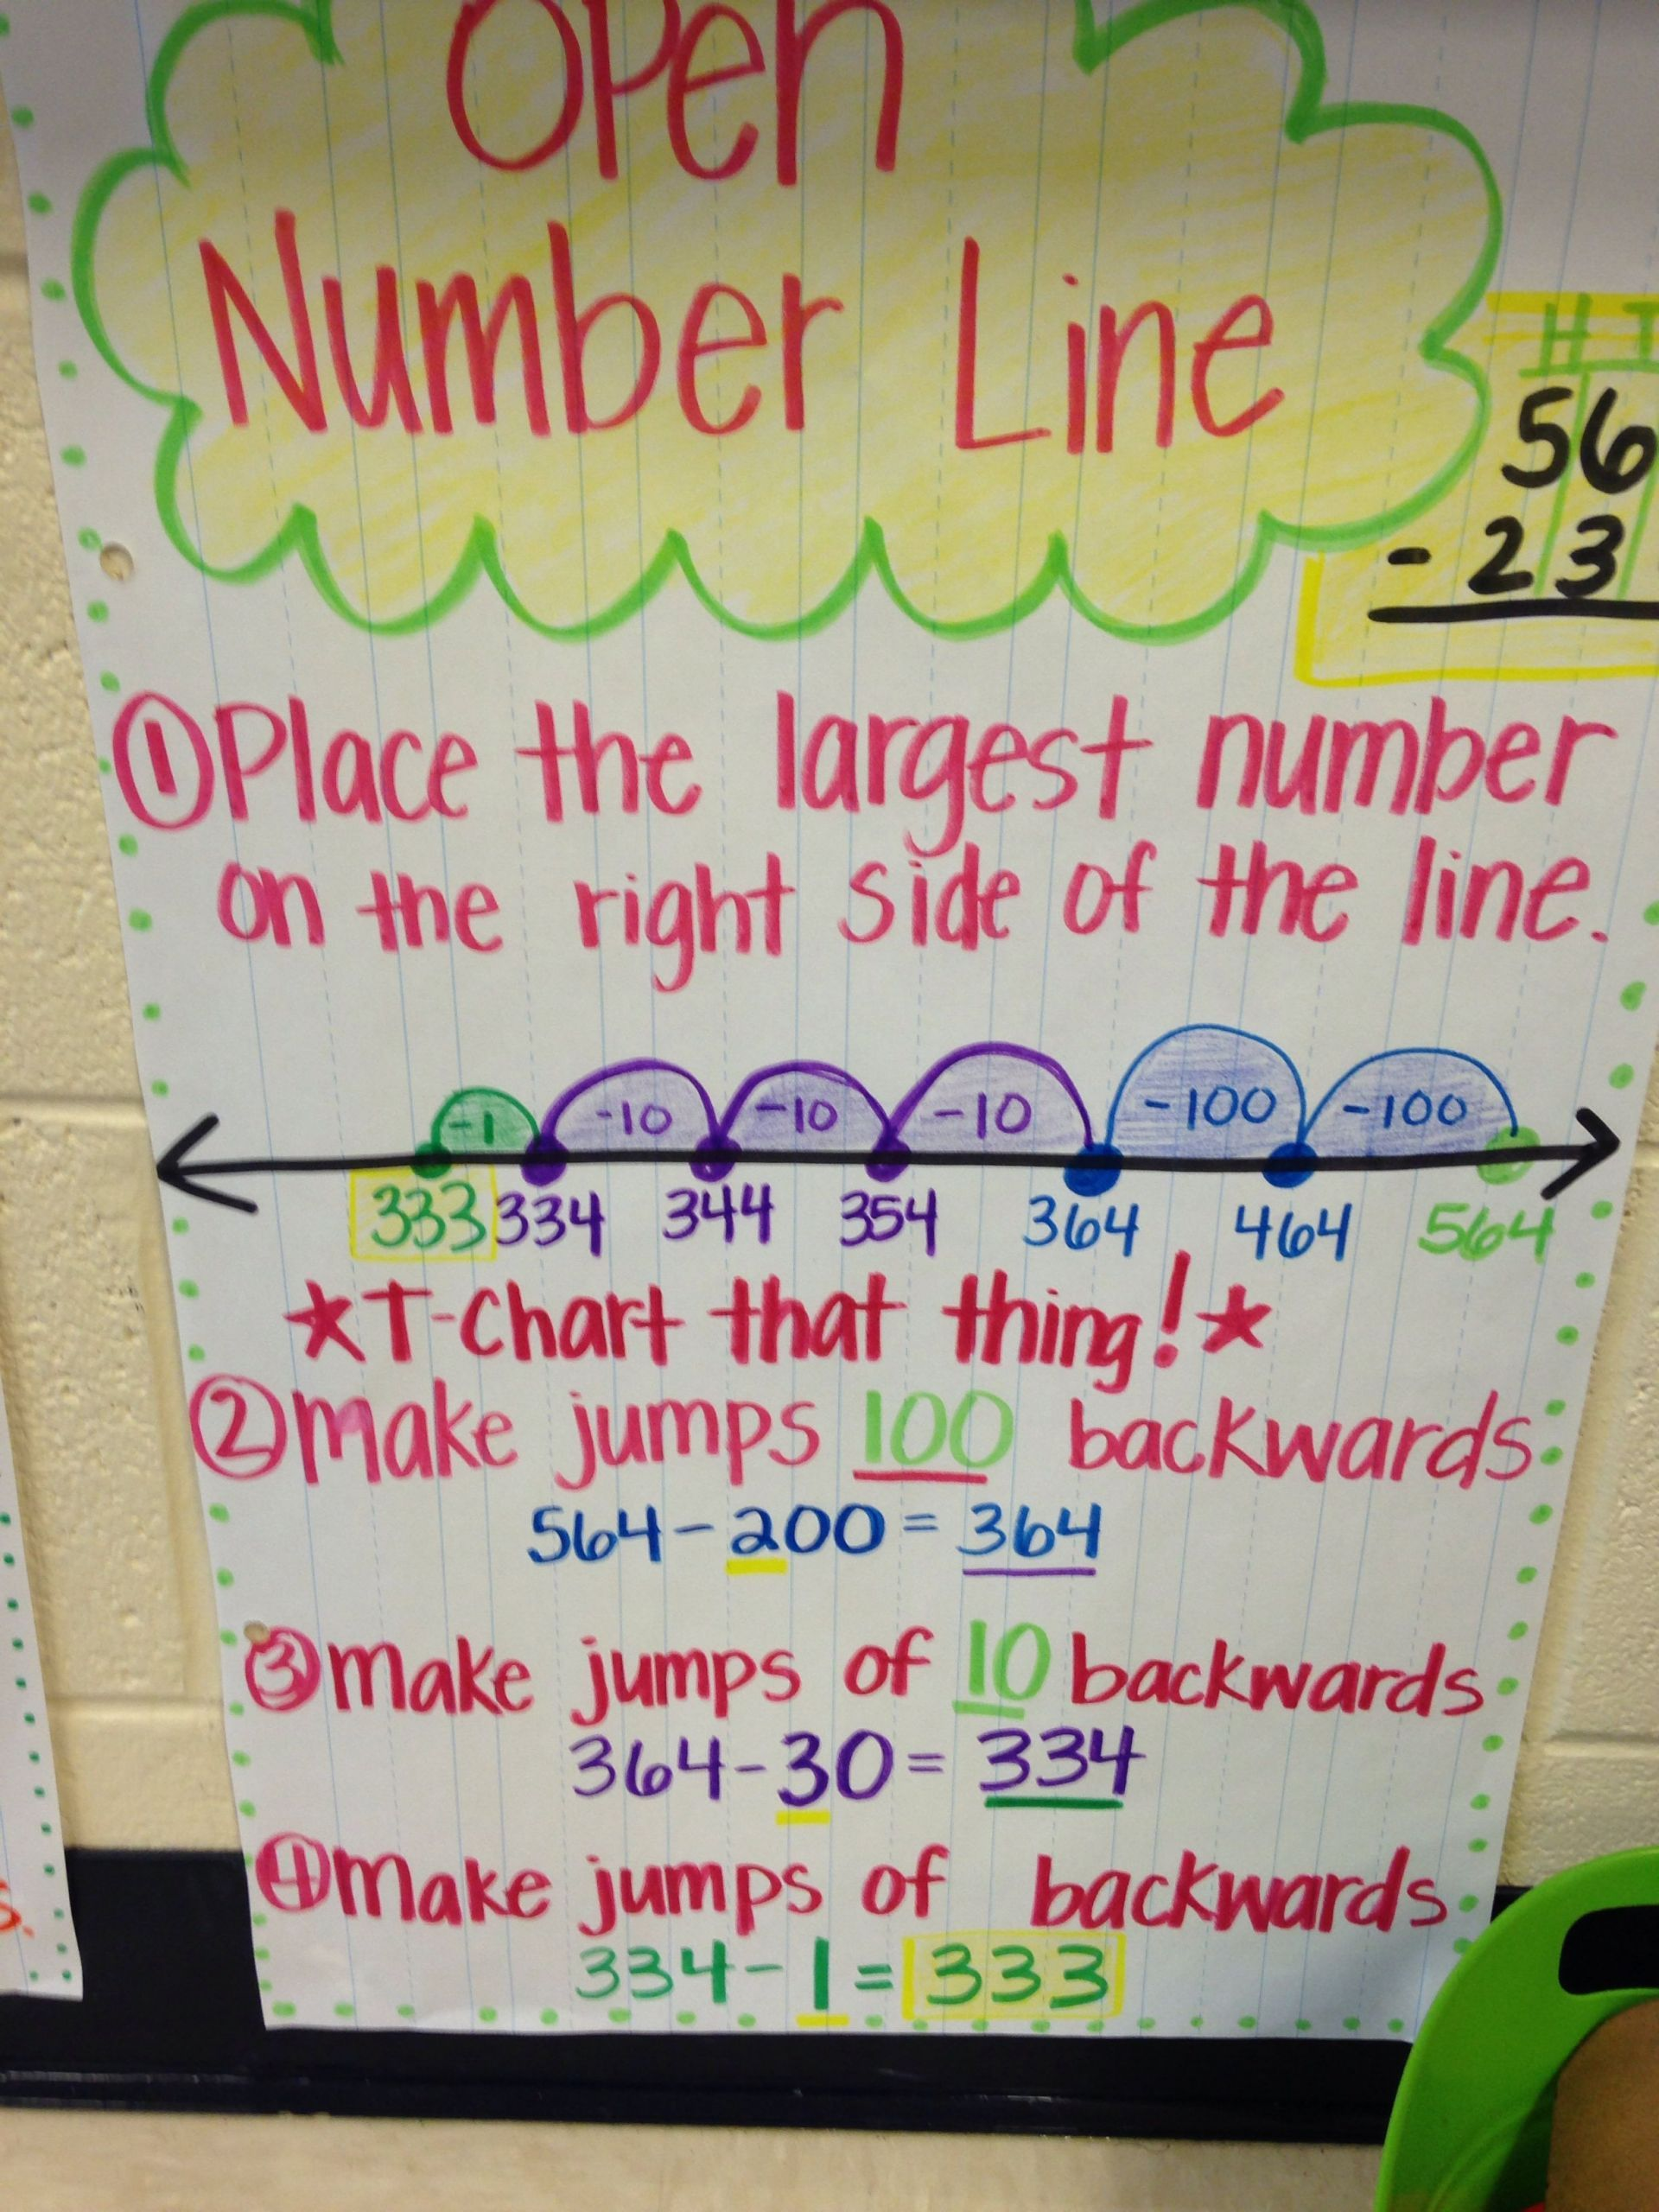 4 Free Math Worksheets Third Grade 3 Subtraction Subtract Whole Tens From 1000 414dc8f9cbeb C Anchor Charts Math Anchor Charts Number Line Open number line addition grade